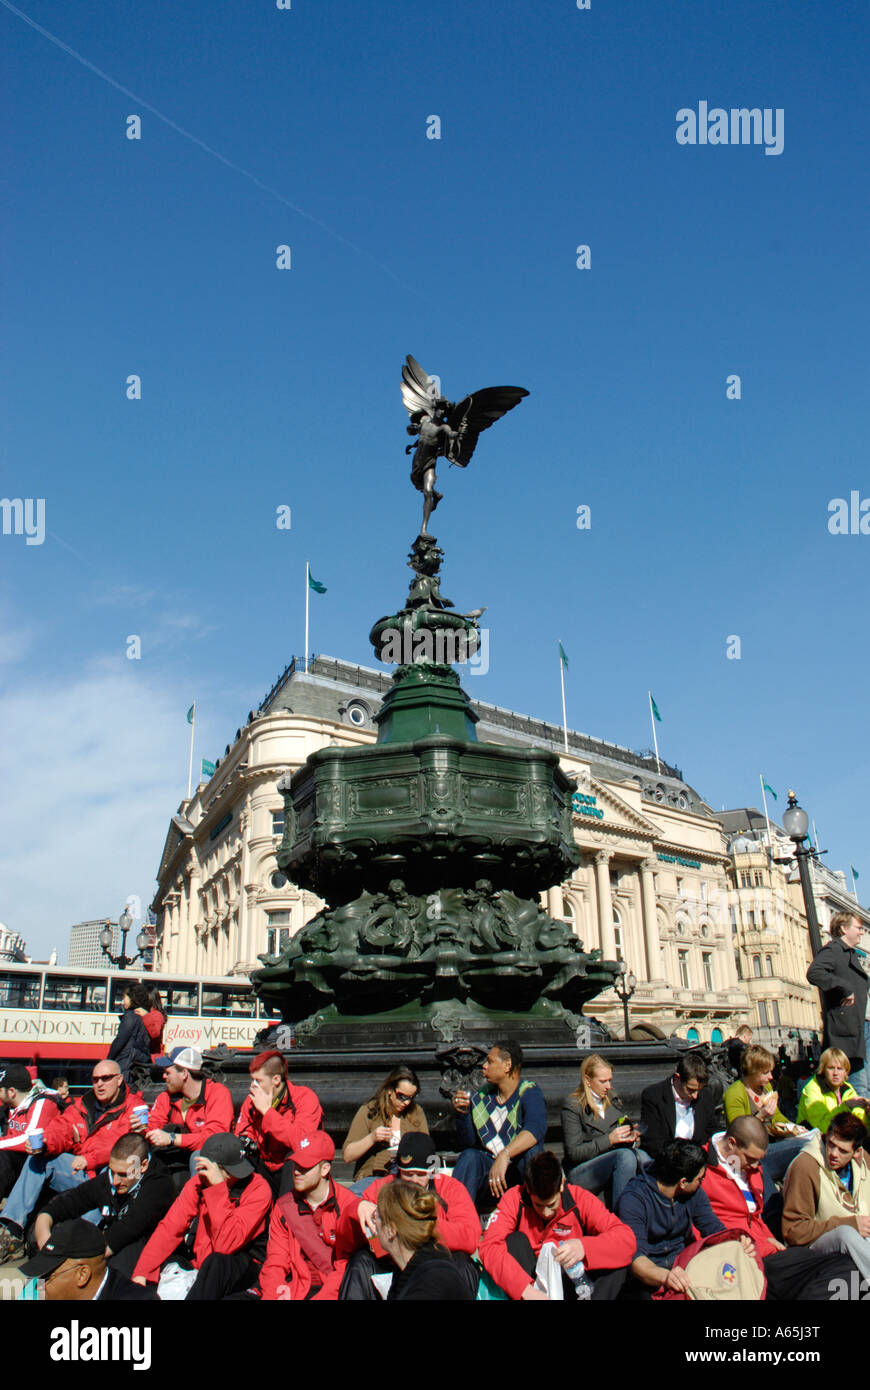 Tourists in bright red colored jackets sitting under the Statue of Eros, Piccadilly Circus, London, England, UK - Stock Image